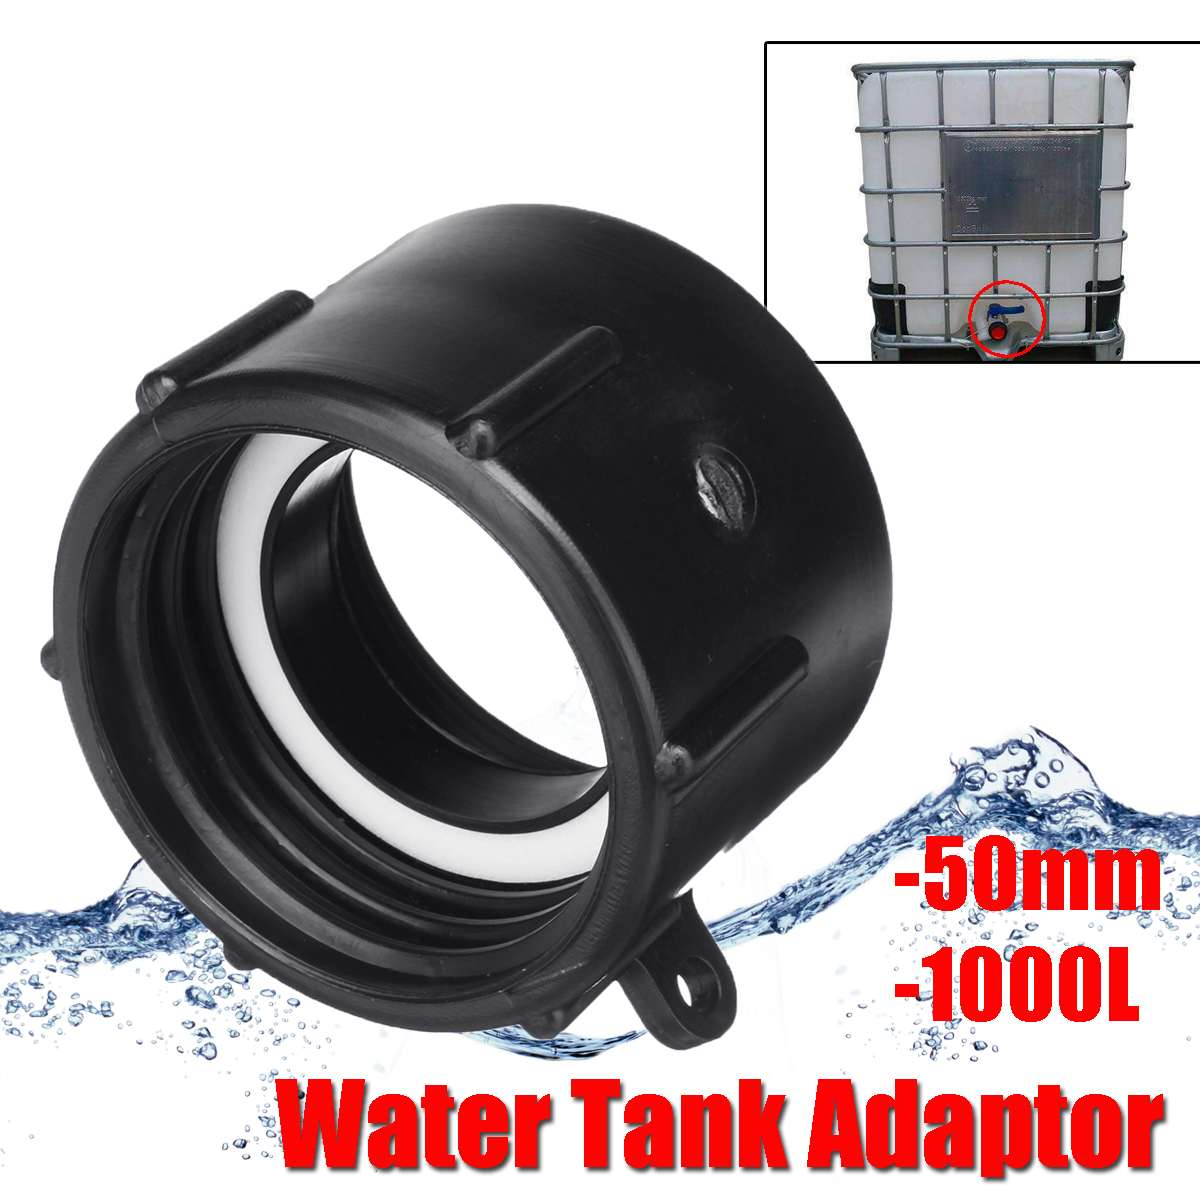 1000L IBC Tank S 50mm 60mm Water Connector Tank Garden Hose Pipe Adapter Fittings  Accessories